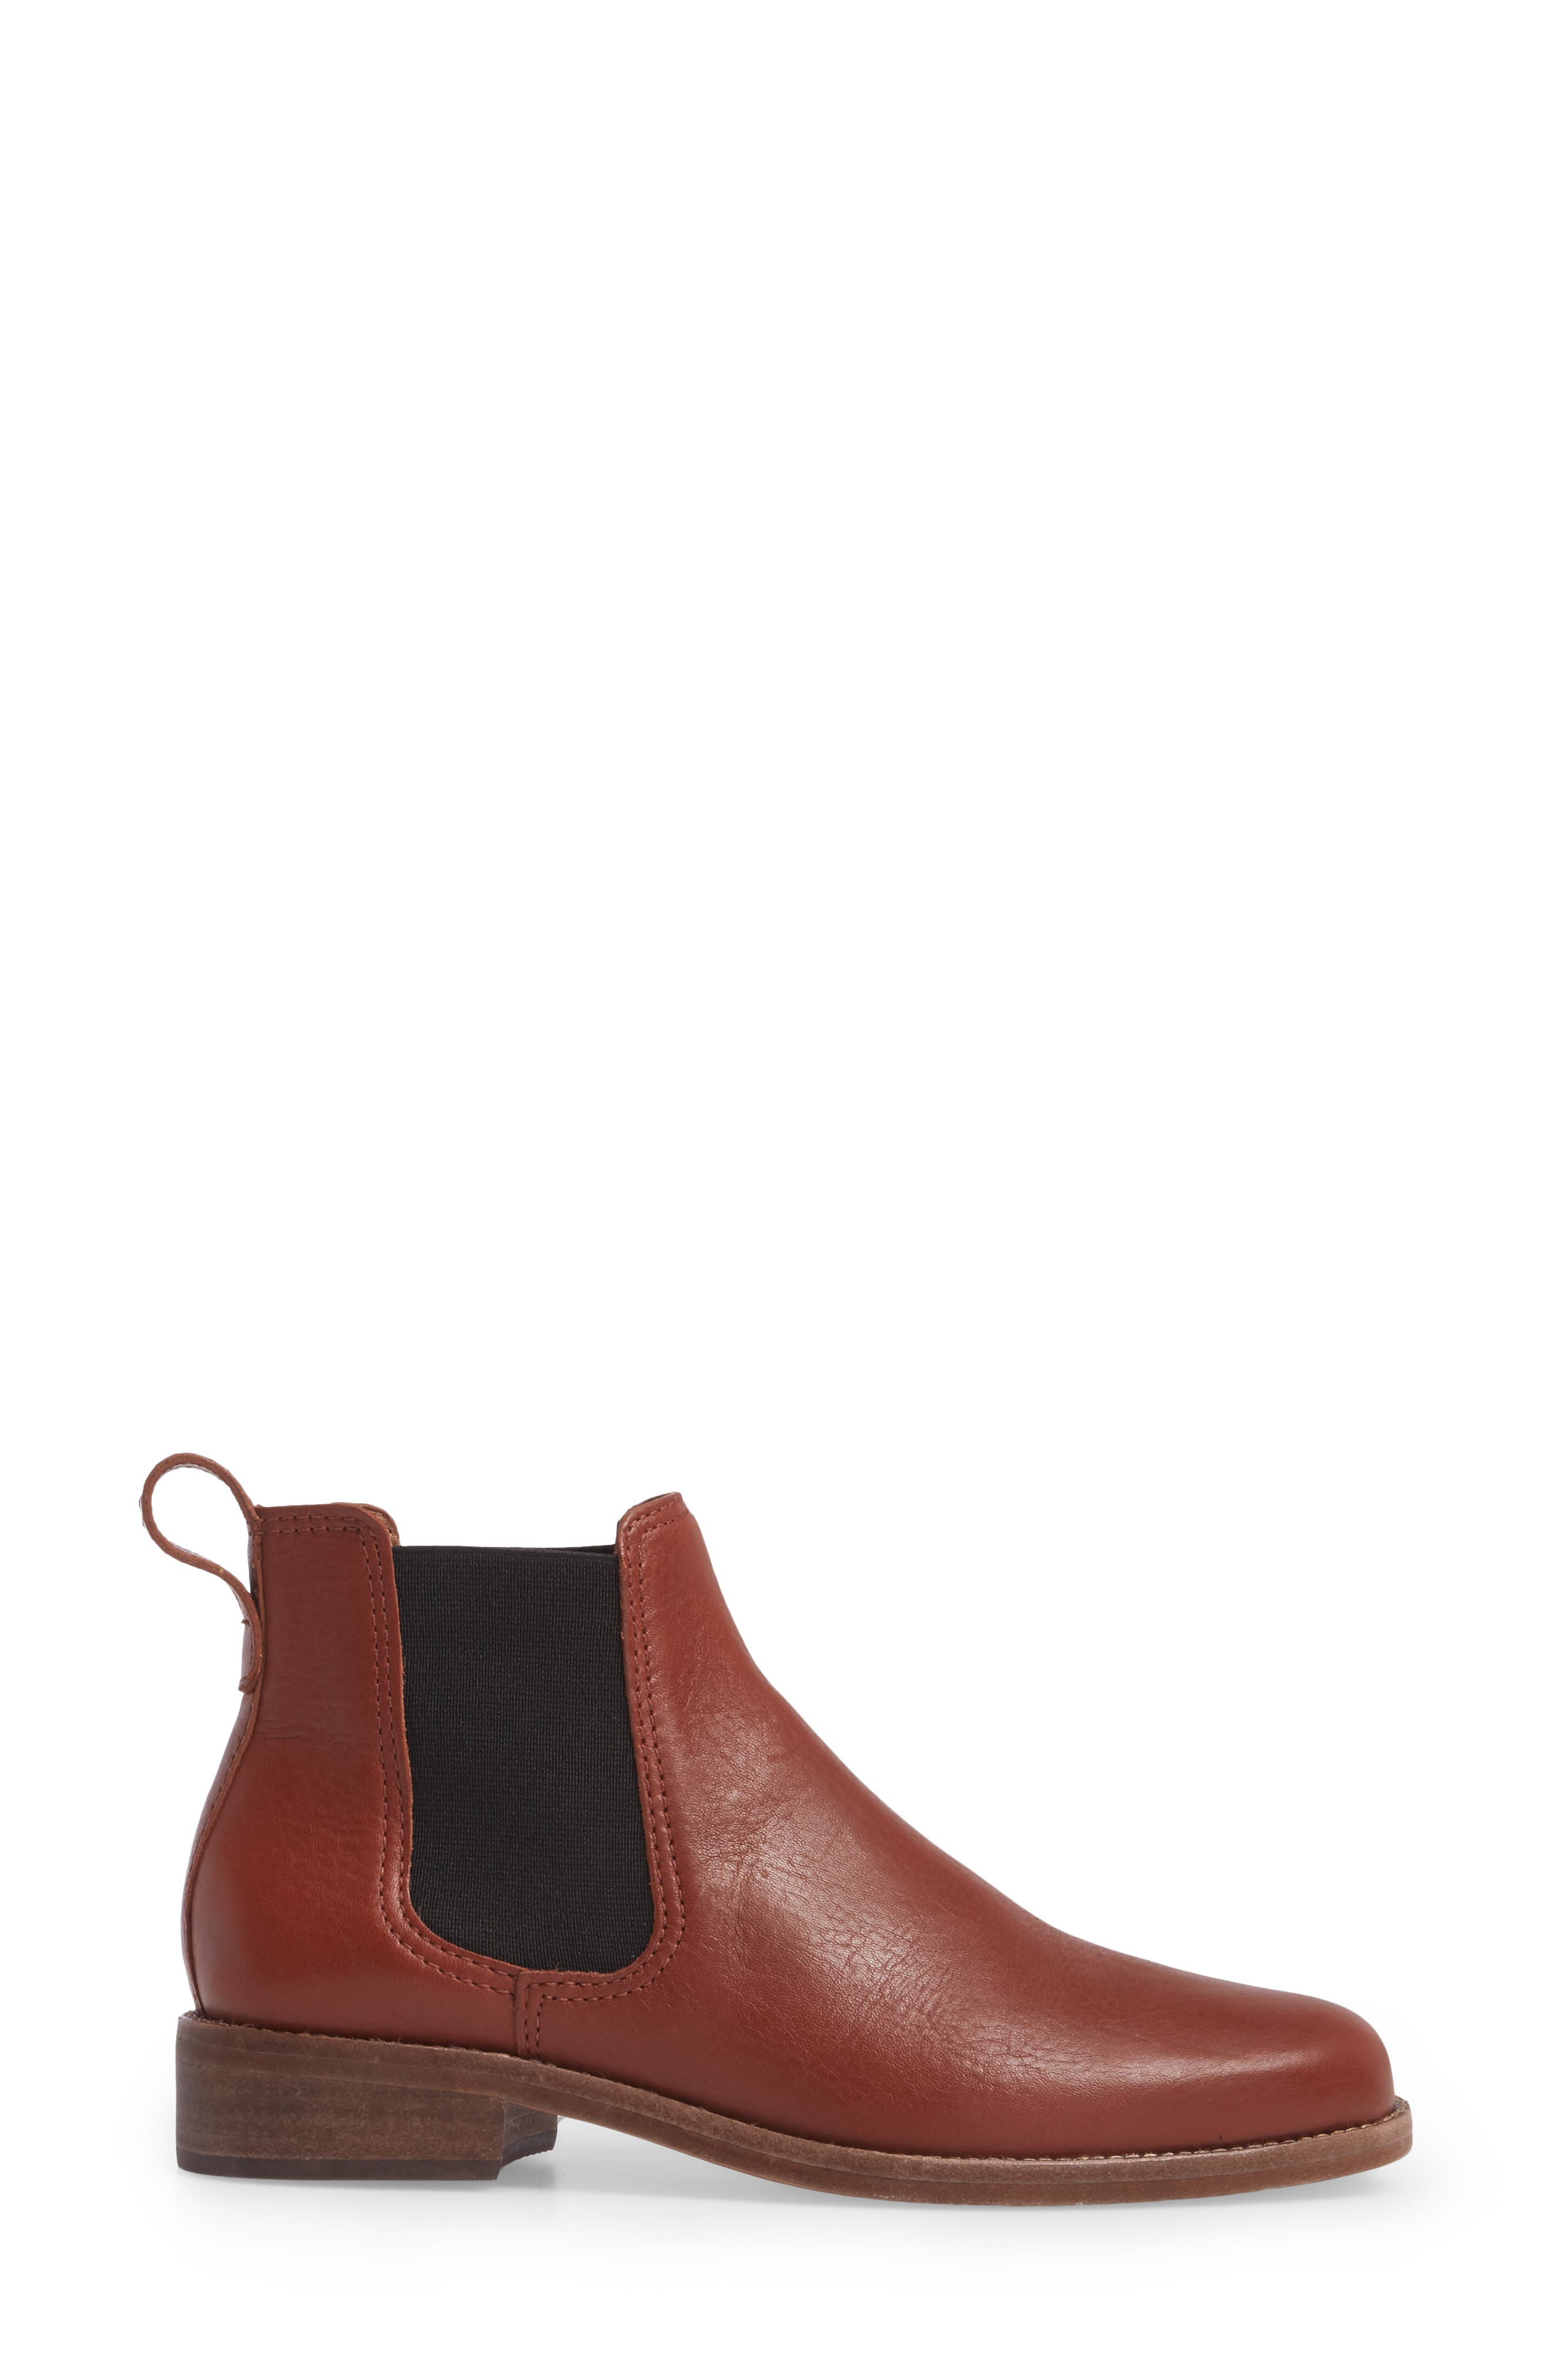 Ainsley Chelsea Boot,                             Alternate thumbnail 3, color,                             Vintage Redwood Leather